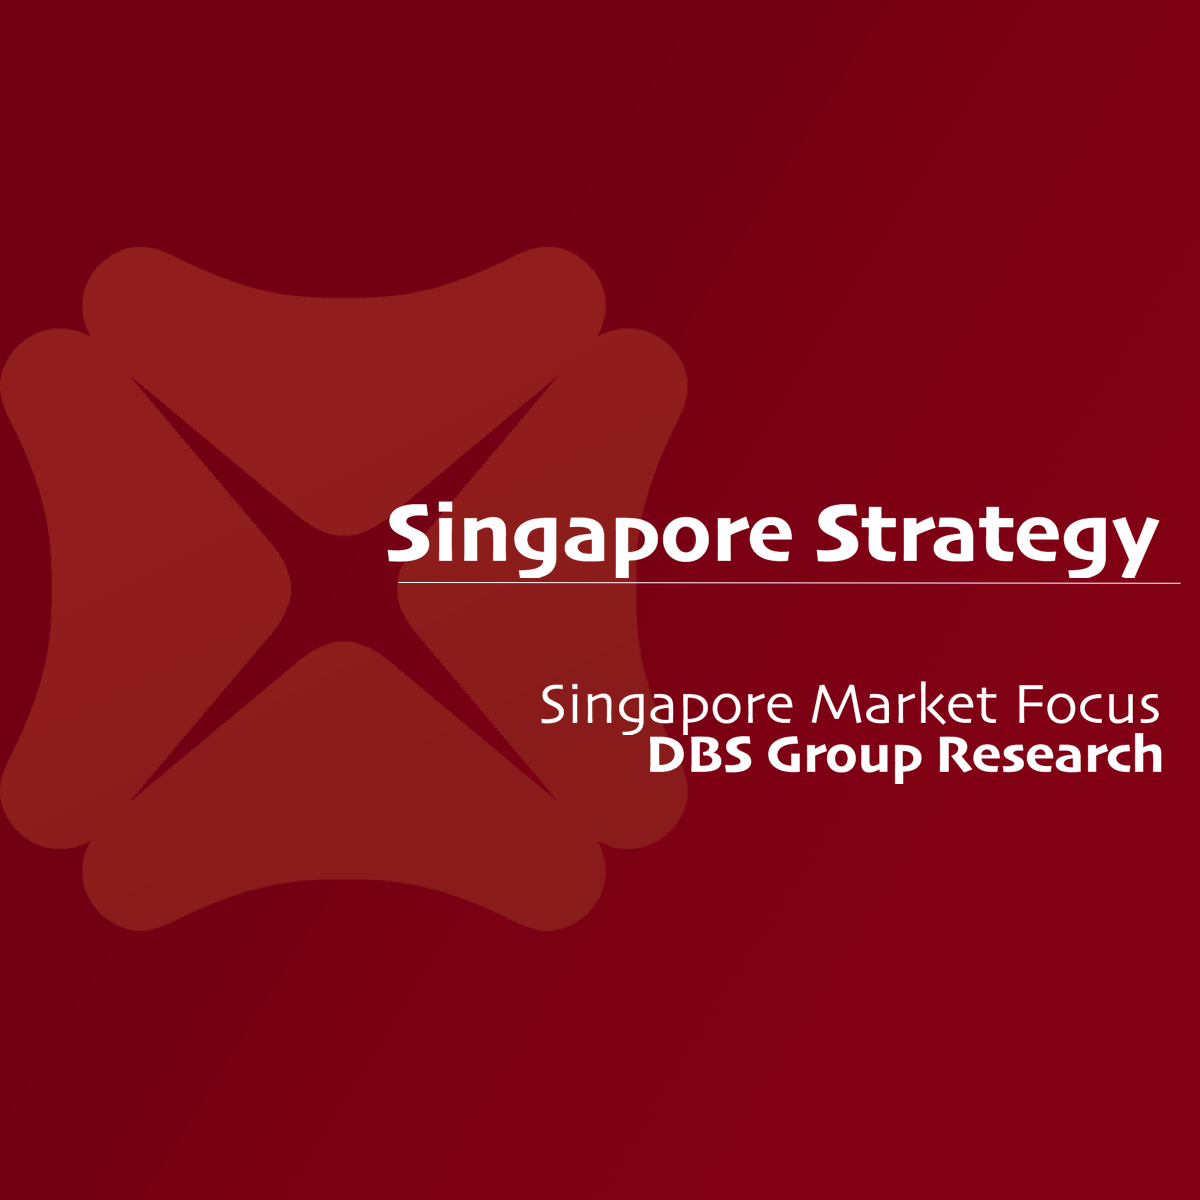 Singapore Monthly Strategy - DBS Vickers 2018-04-03: Sit Tight - Directional Break Ahead